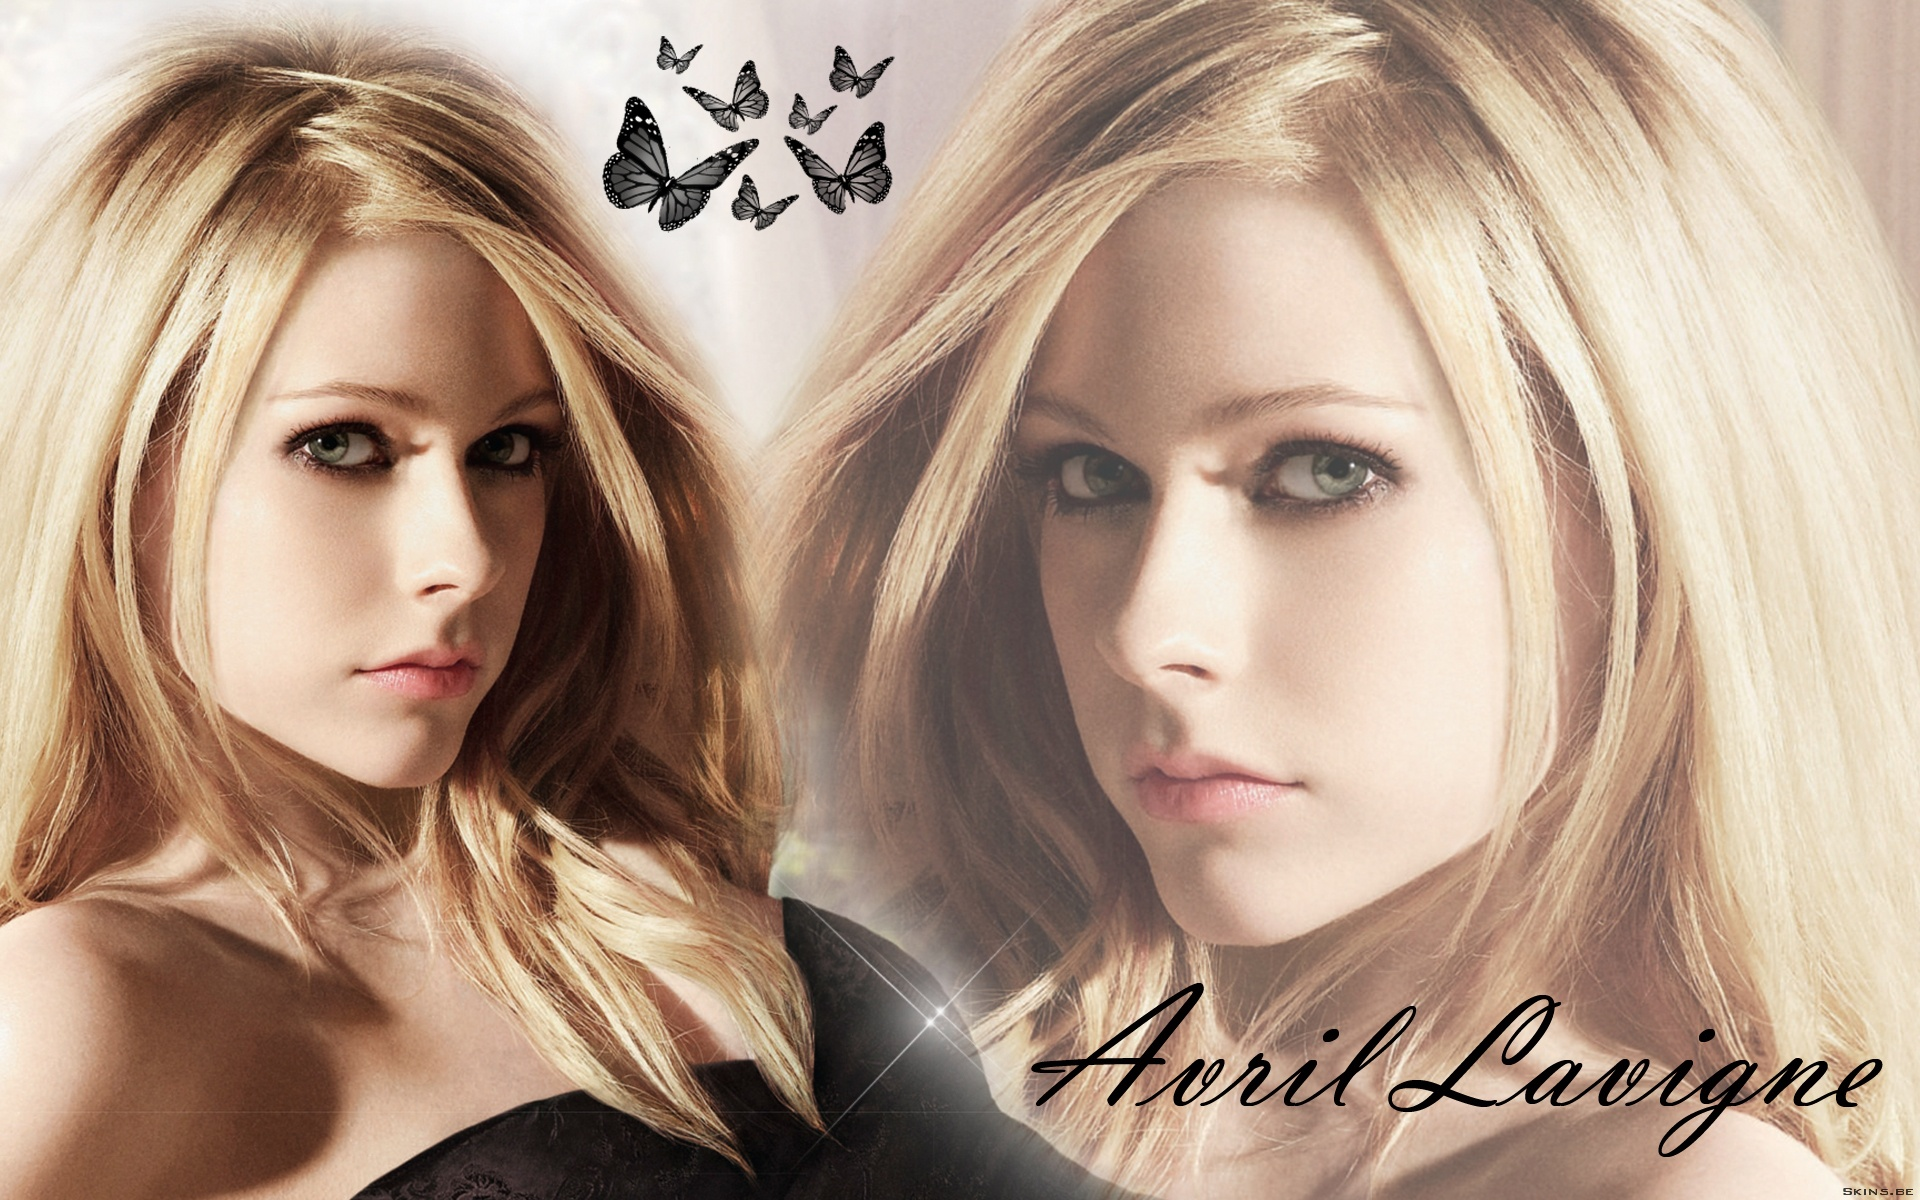 avril lavigne hot hd wallpapers - all hd wallpapers